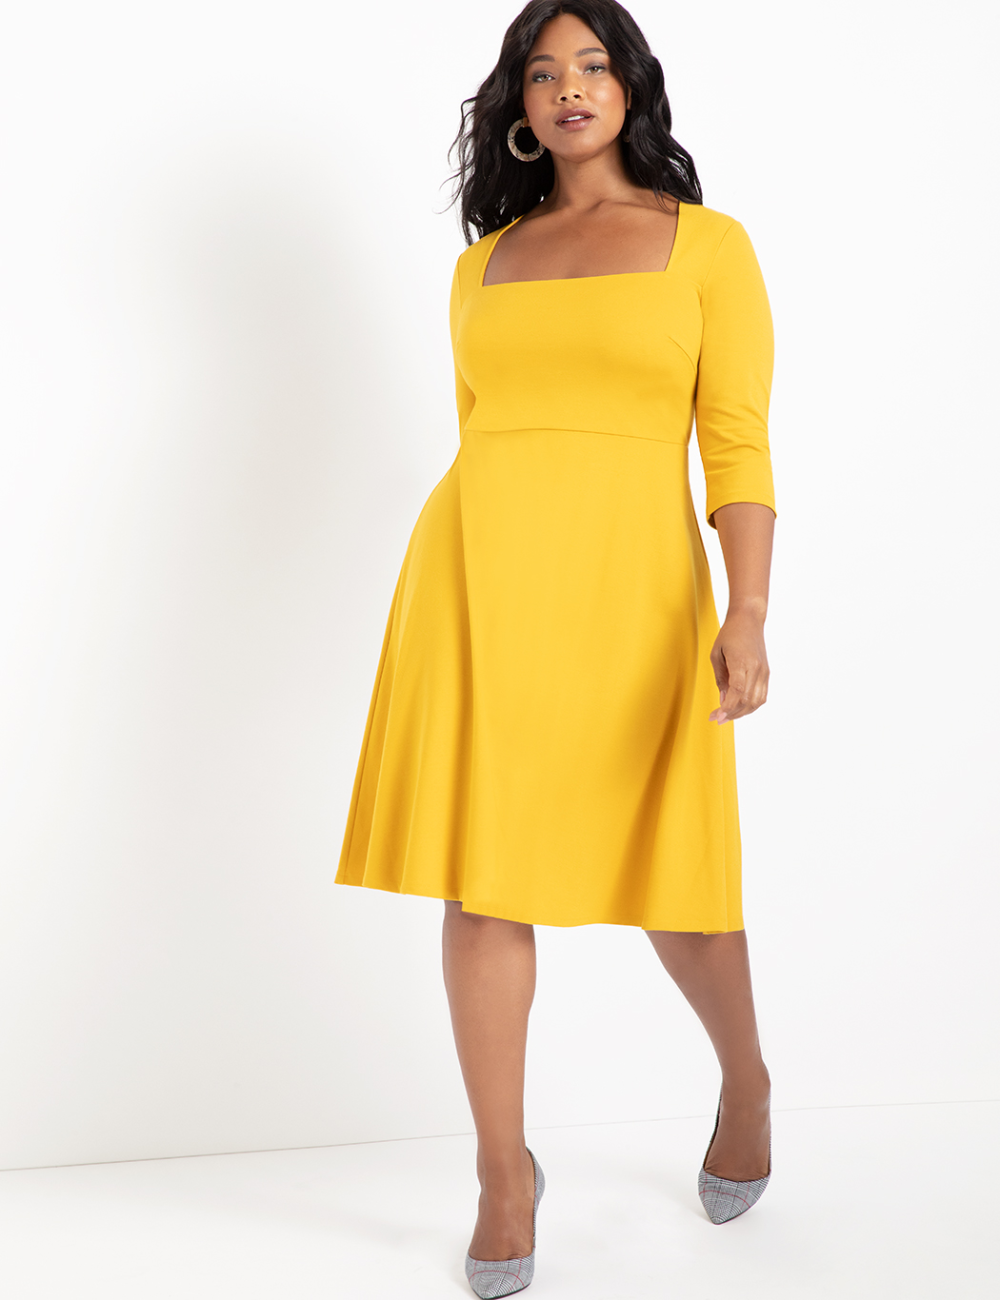 3 4 Sleeve Fit And Flare Dress Women S Plus Size Dresses Eloquii Plus Size Dresses Fit And Flare Dress Fit Flare Dress